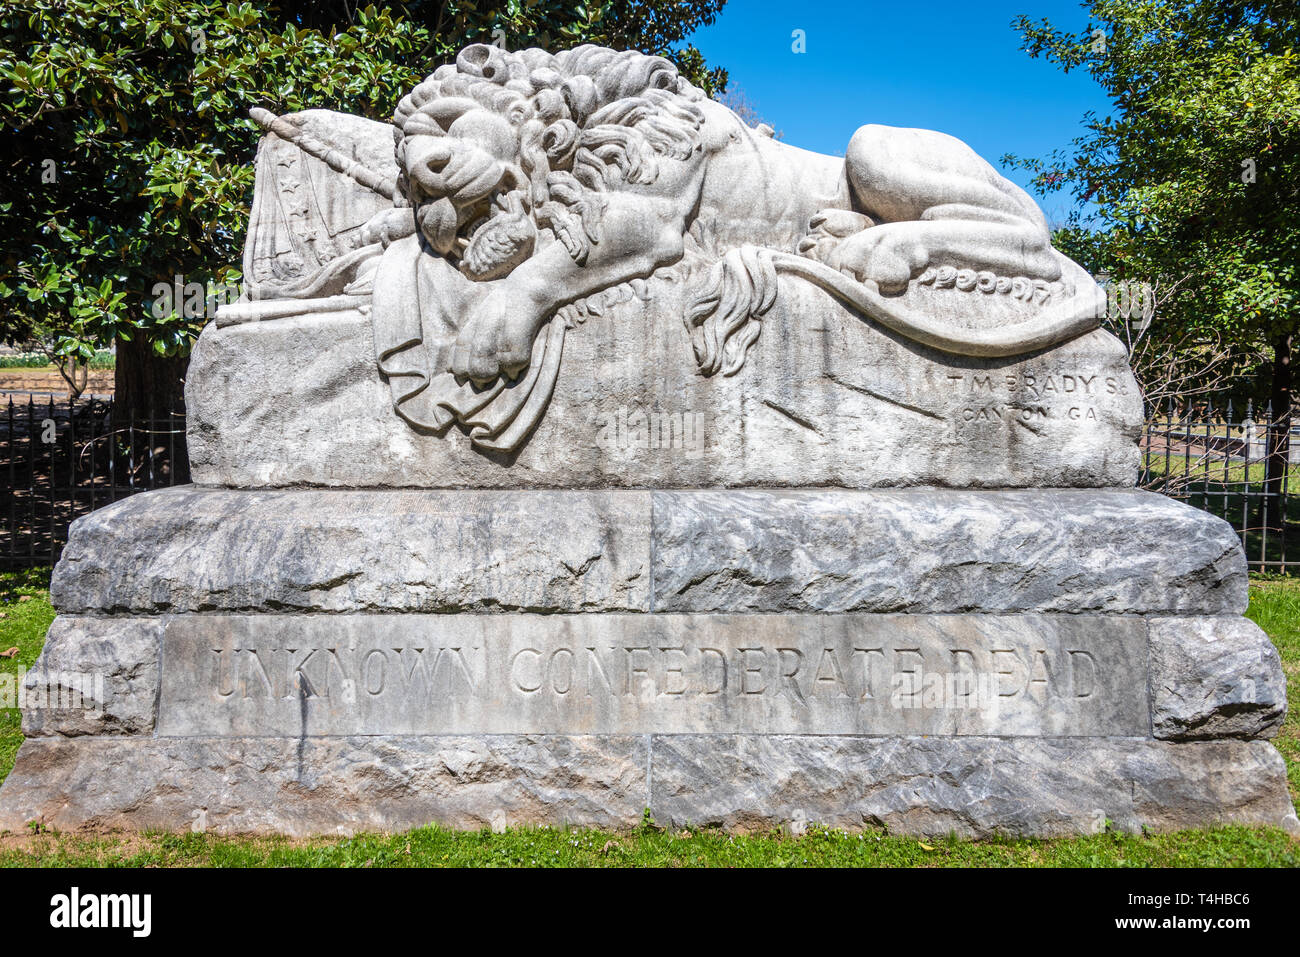 Unknown Confederate Dead memorial known as The Lion of the Confederacy, or The Lion of Atlanta, at Oakland Cemetery in Atlanta, Georgia. (USA) - Stock Image